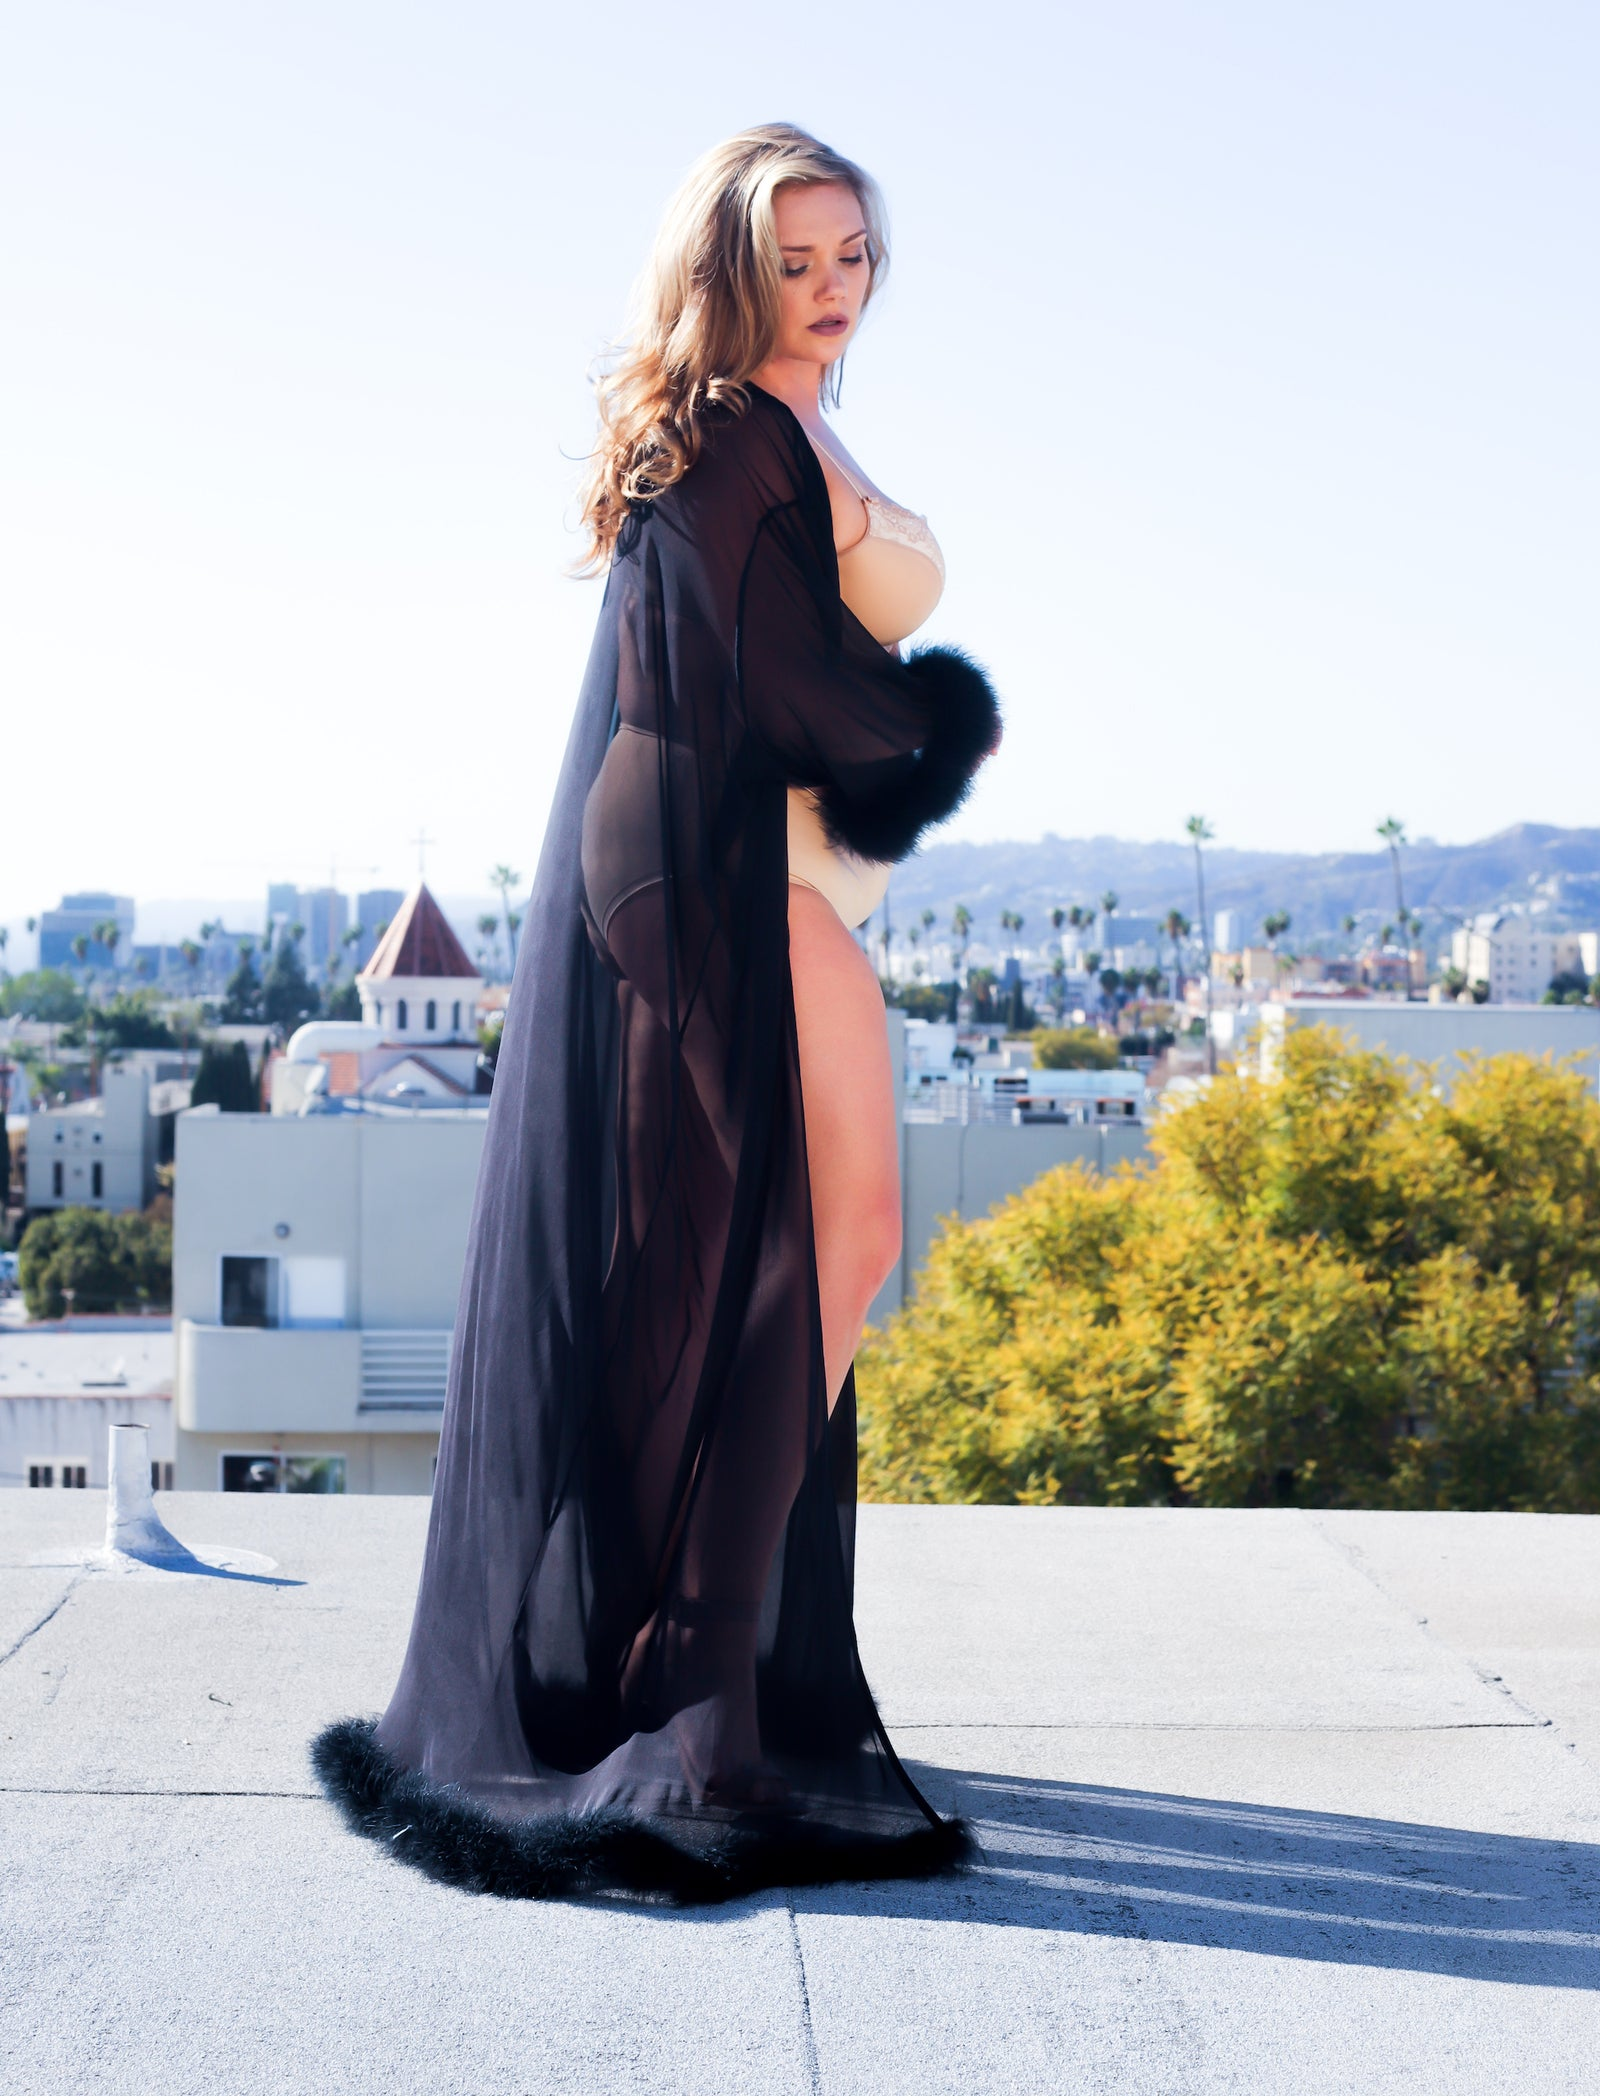 Plus size model Kelsey Olson wearing proud mary fashion marabou robe in Los Angeles. Shot by Jessica Hinkle.